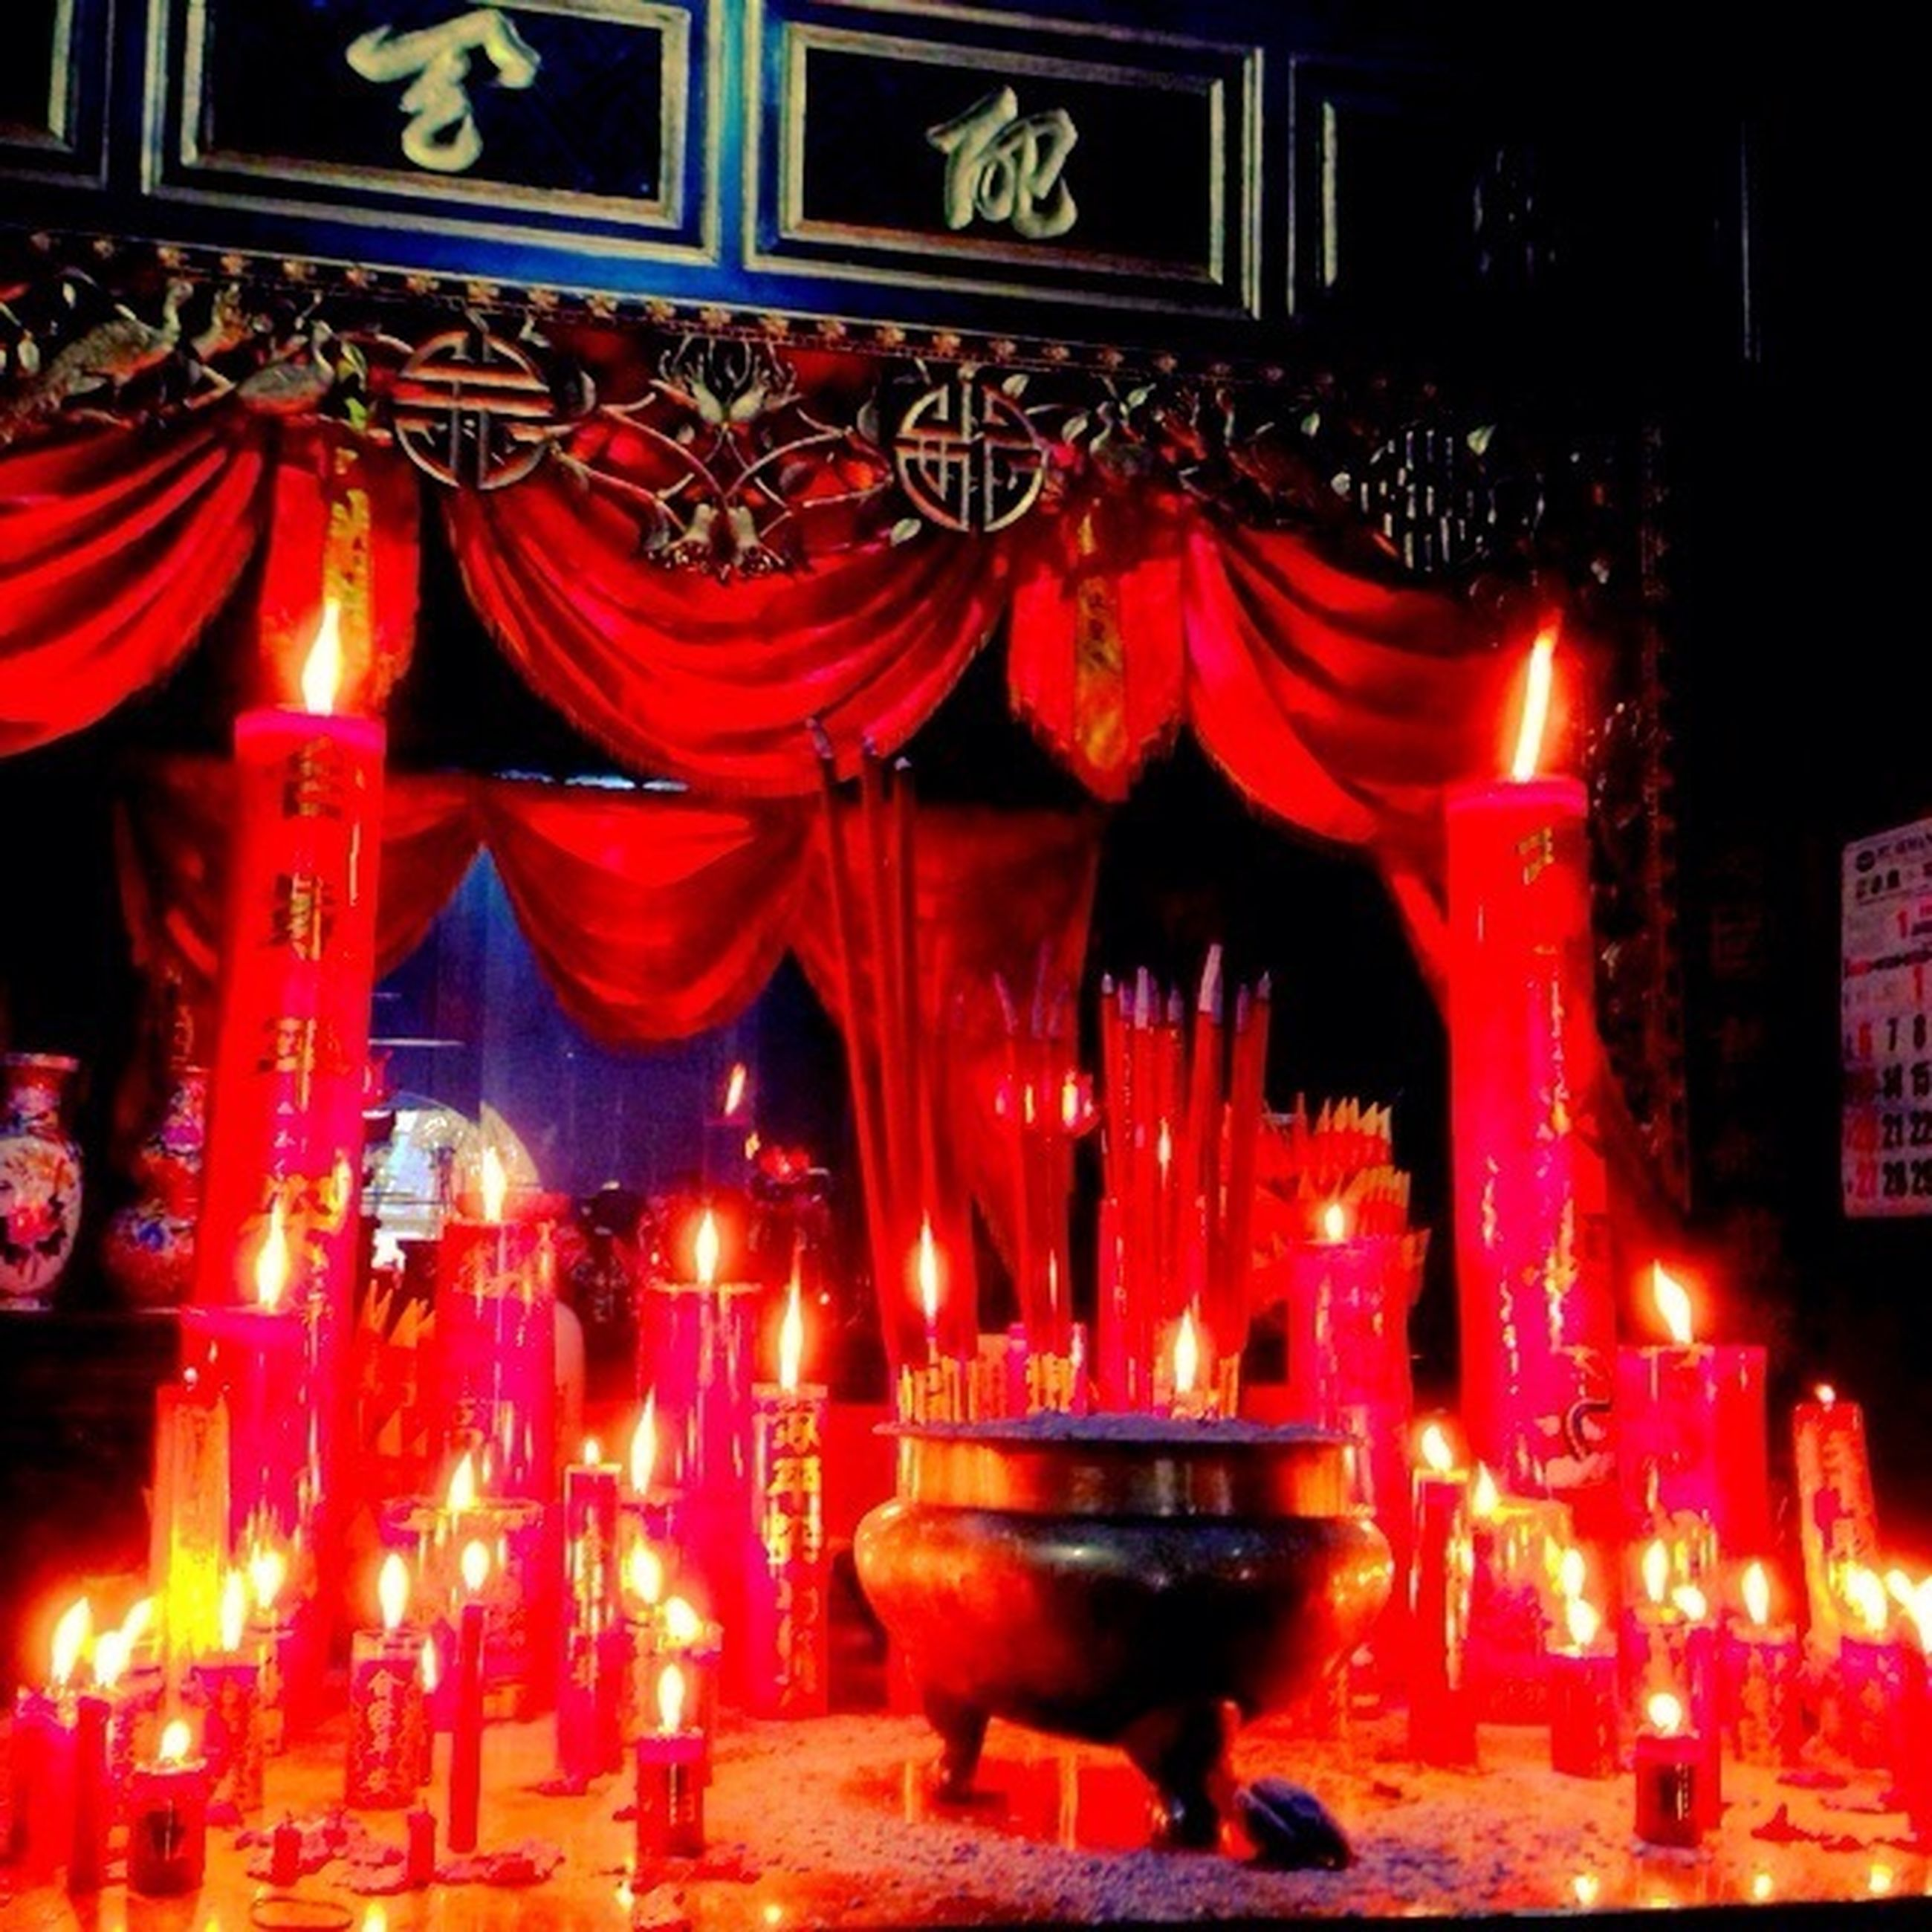 illuminated, red, night, indoors, tradition, cultures, lantern, religion, in a row, decoration, lighting equipment, art and craft, human representation, temple - building, celebration, spirituality, culture, candle, hanging, art